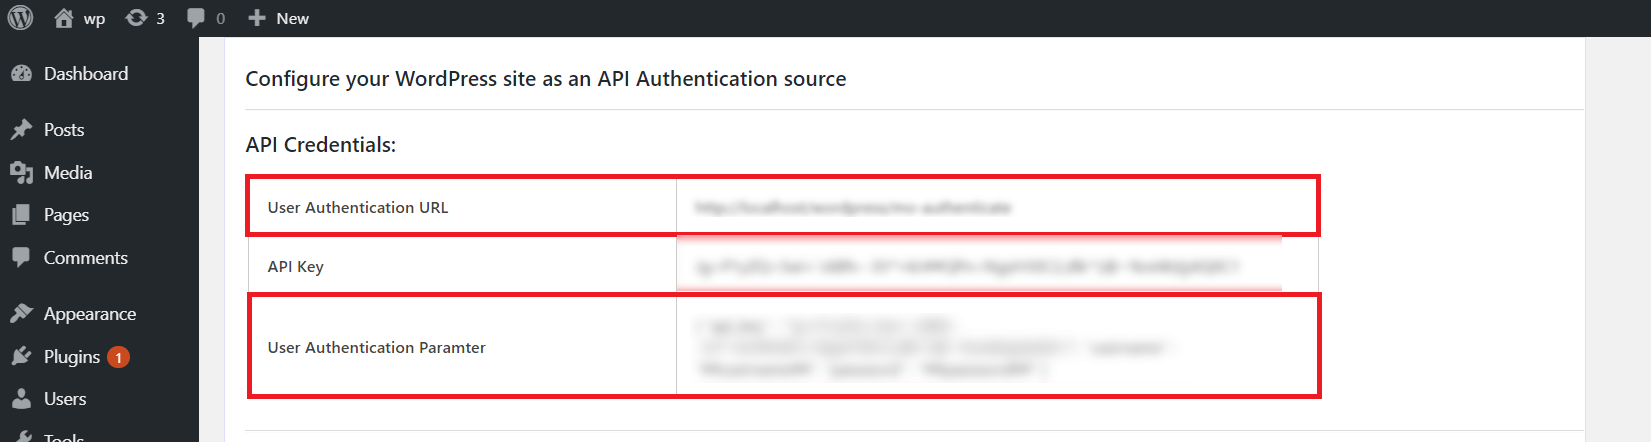 wordpress AS api authentication source api credentials